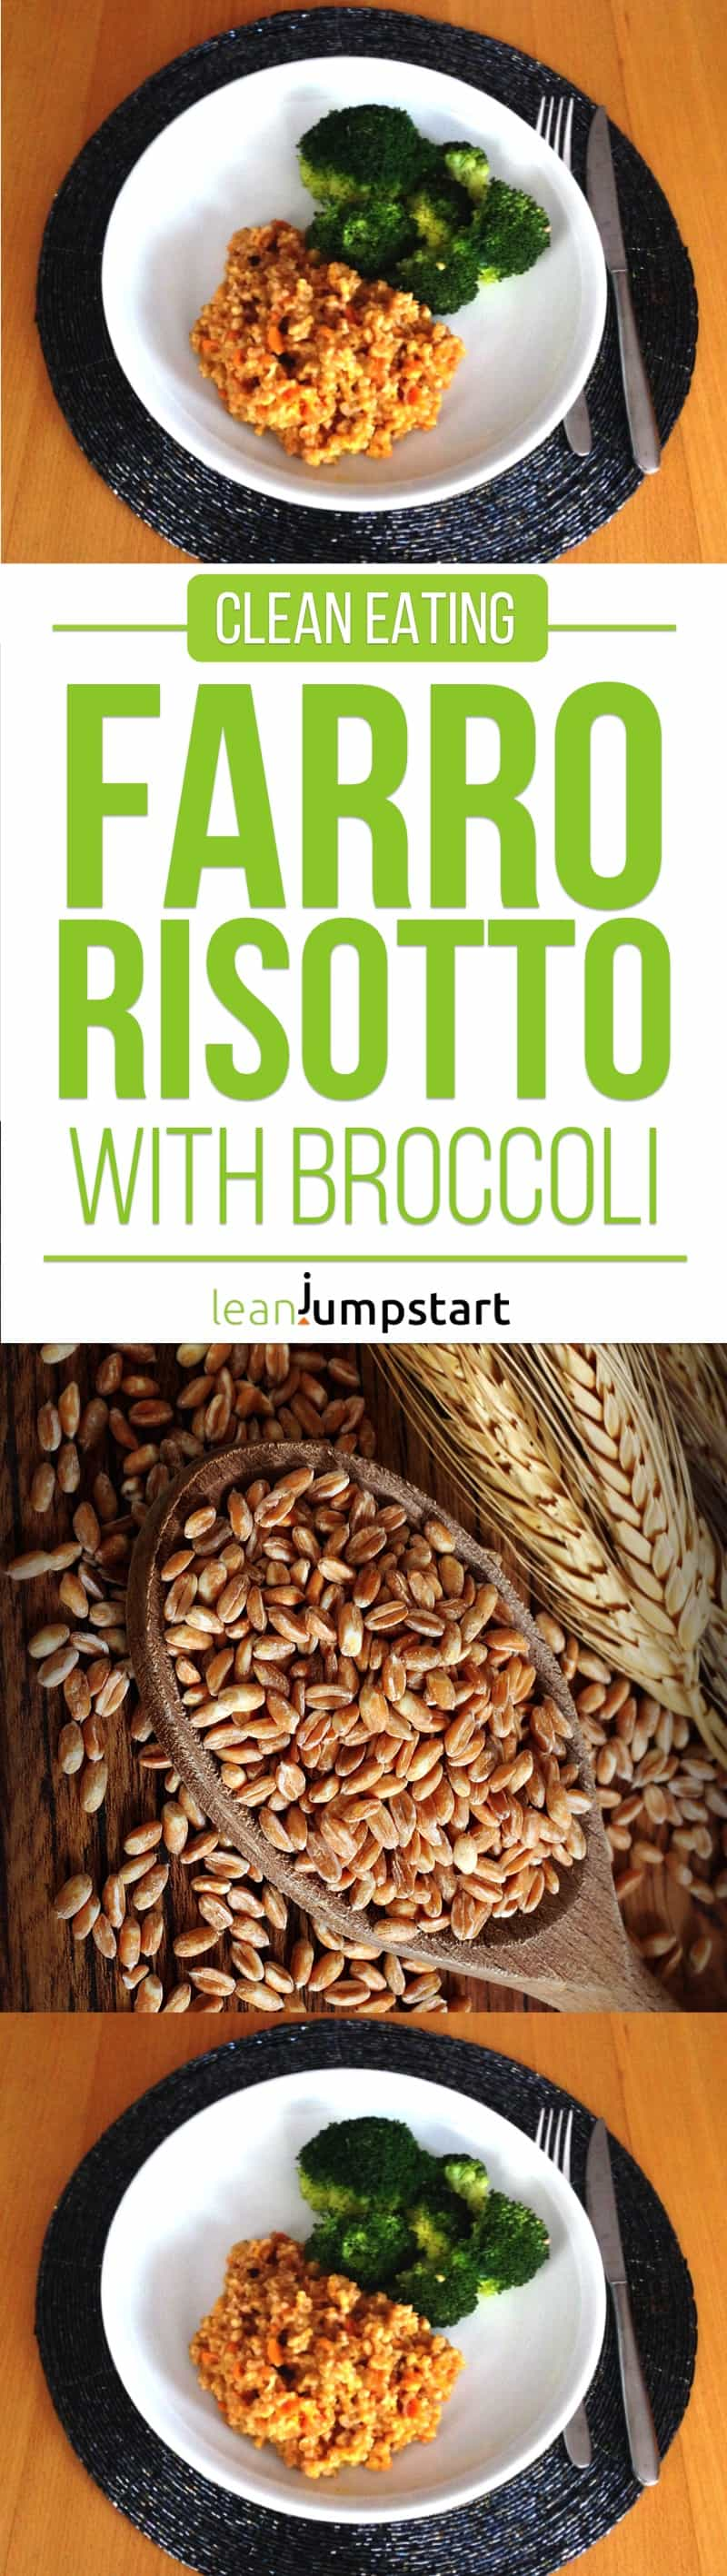 clean eating farro risotto recipe: easy and delicious. Click through!